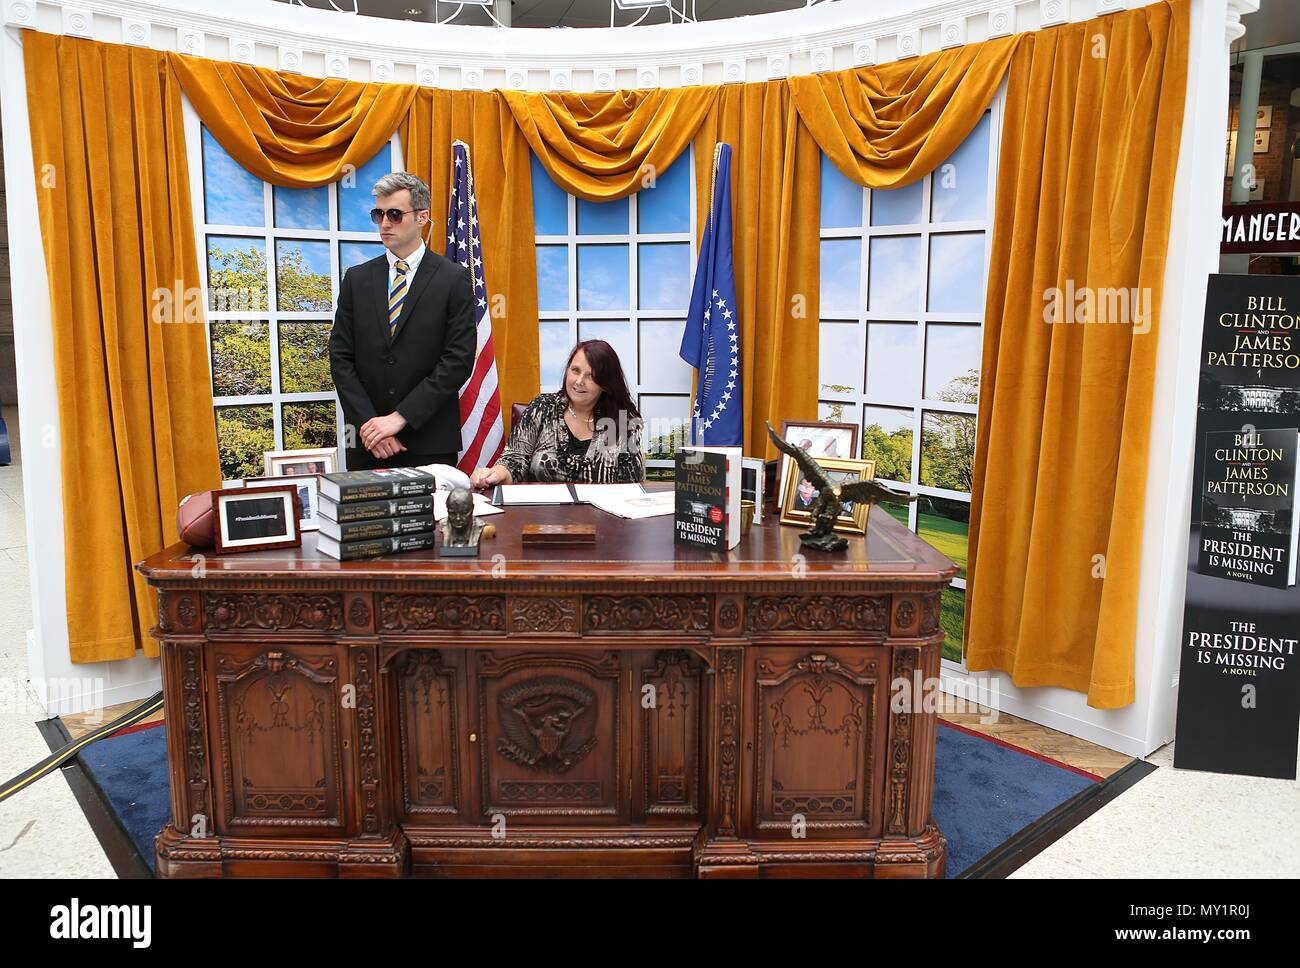 Oval Office comes to Waterloo courtesy of PRH / The Bookseller - Stock Image